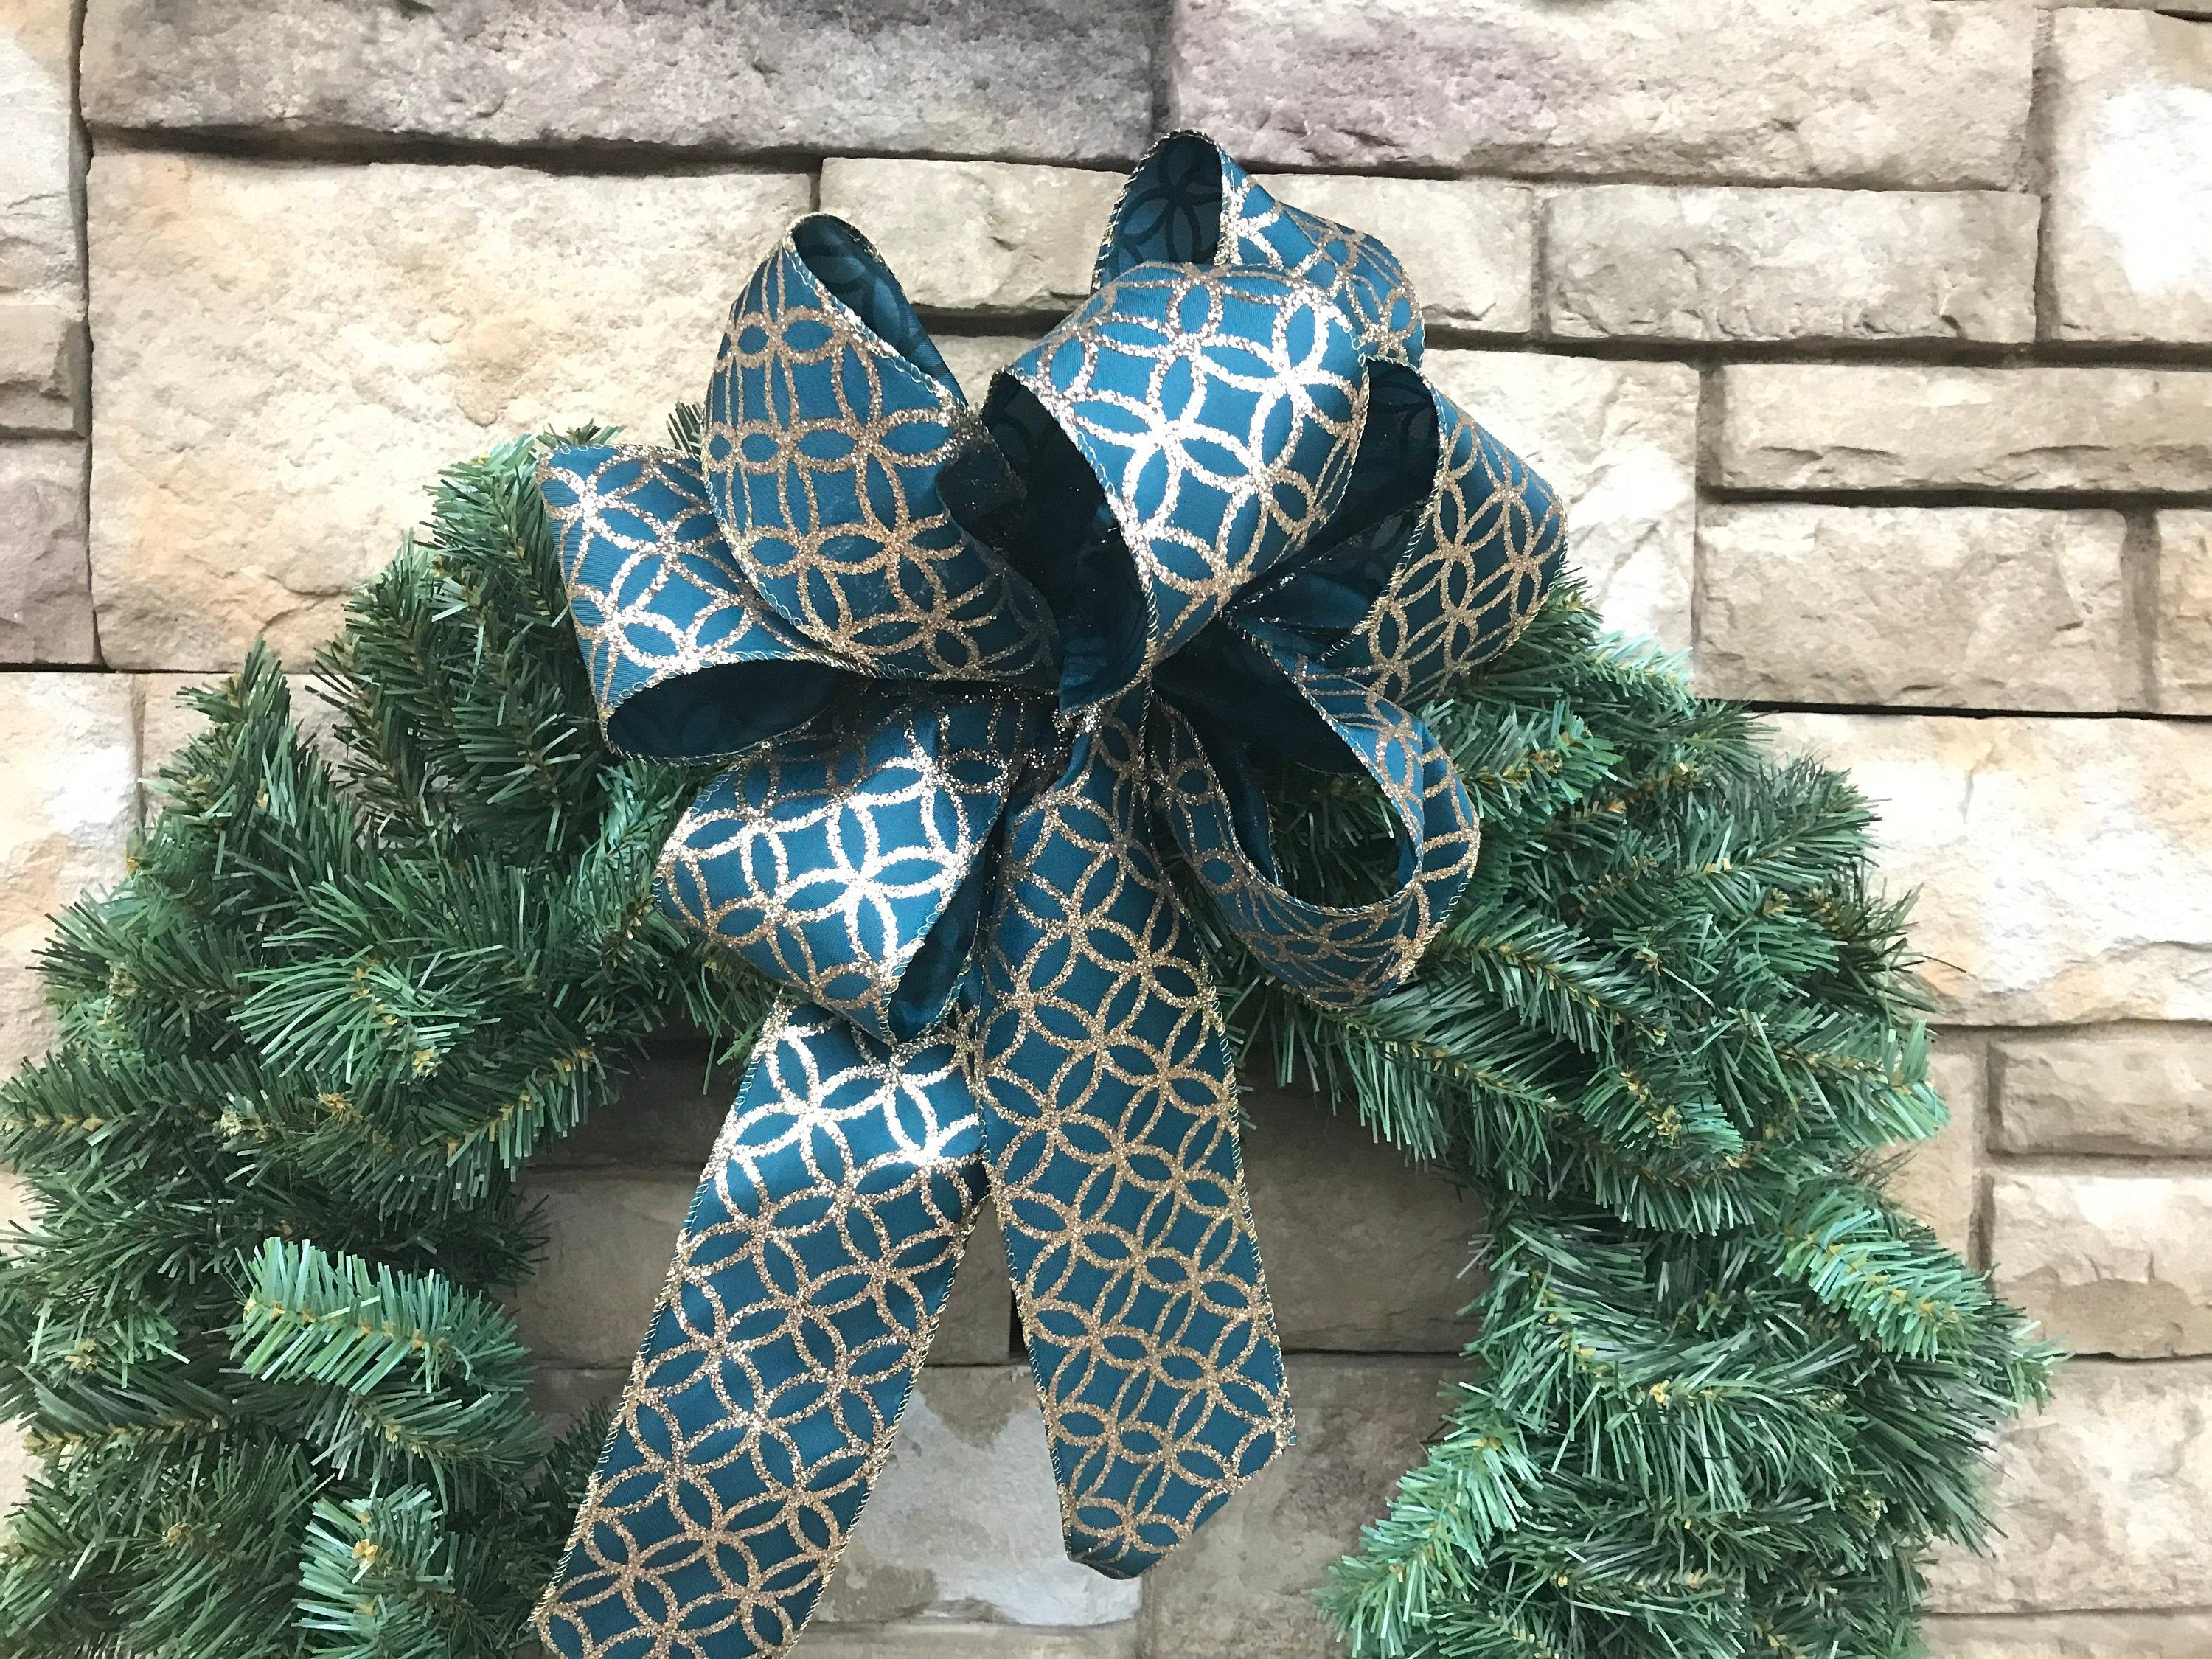 4 Large Wired Teal And Gold Christmas Bows Peacock Blue Holiday Bows Christmas Bows Teal Wreath Bows Peacock Blue And Gold Decor With Images Gold Christmas Bows Christmas Bows Teal And Gold